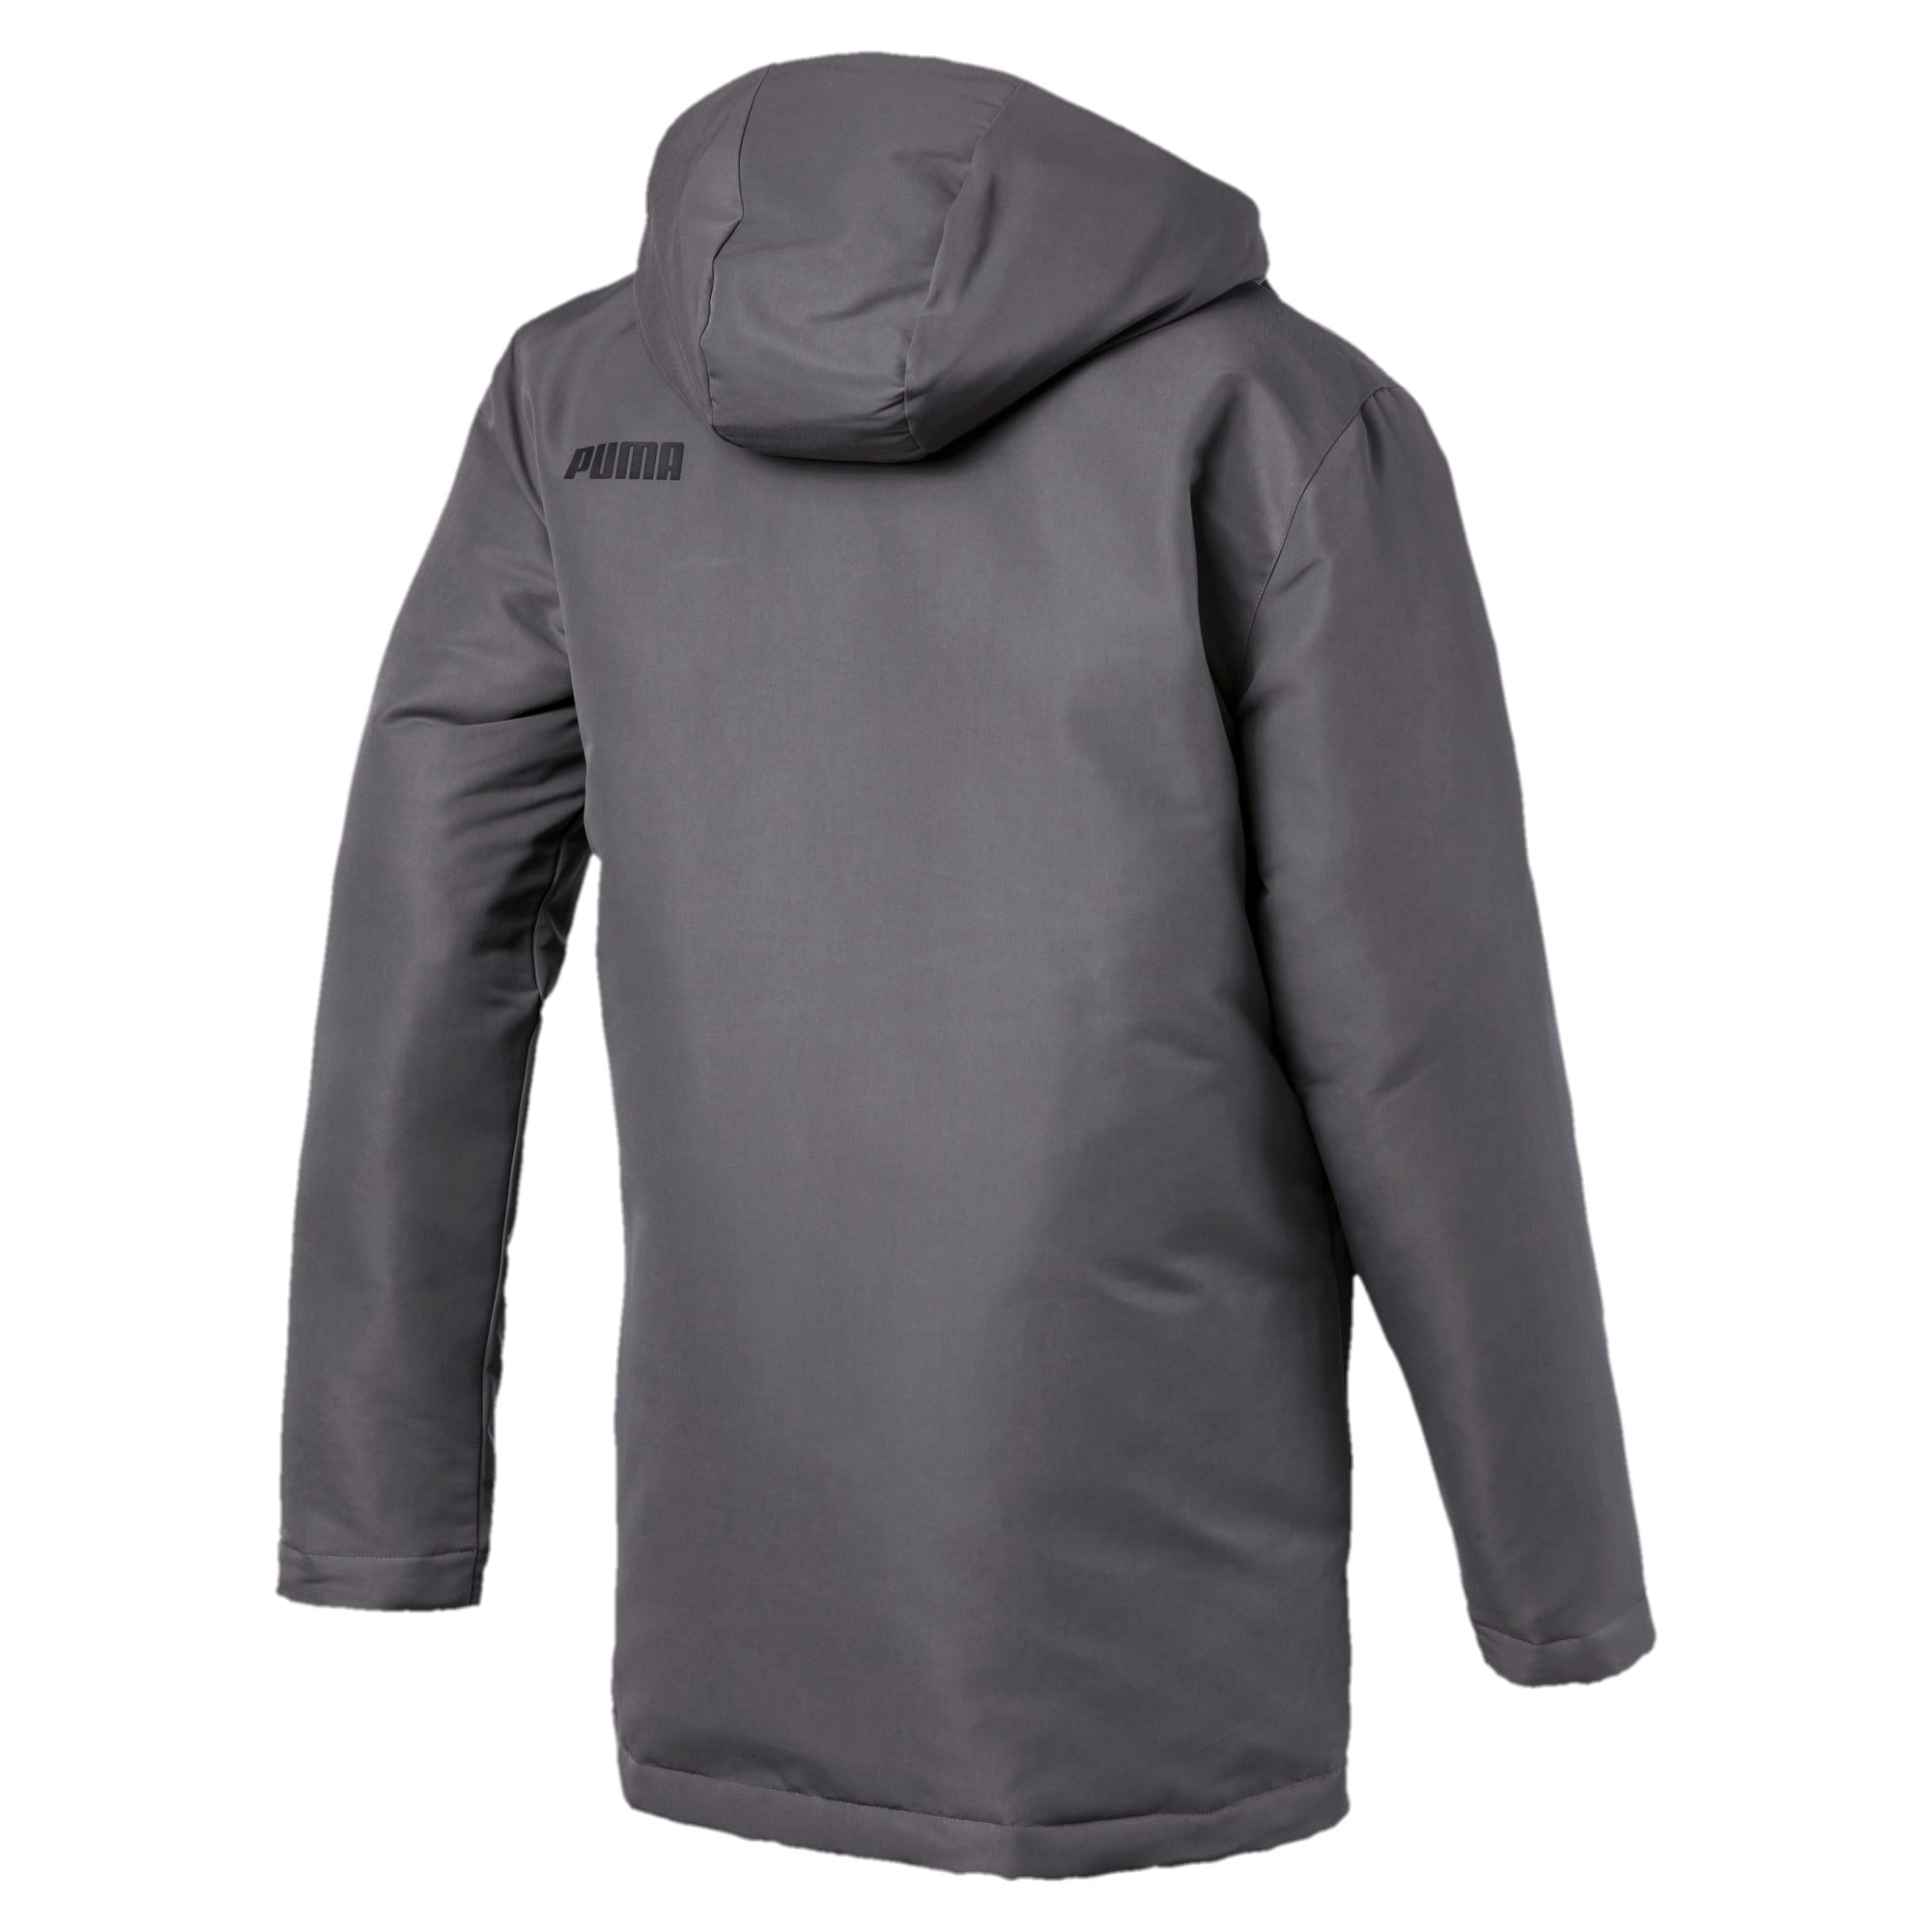 Thumbnail 5 of Essentials Protect Men's Jacket, CASTLEROCK, medium